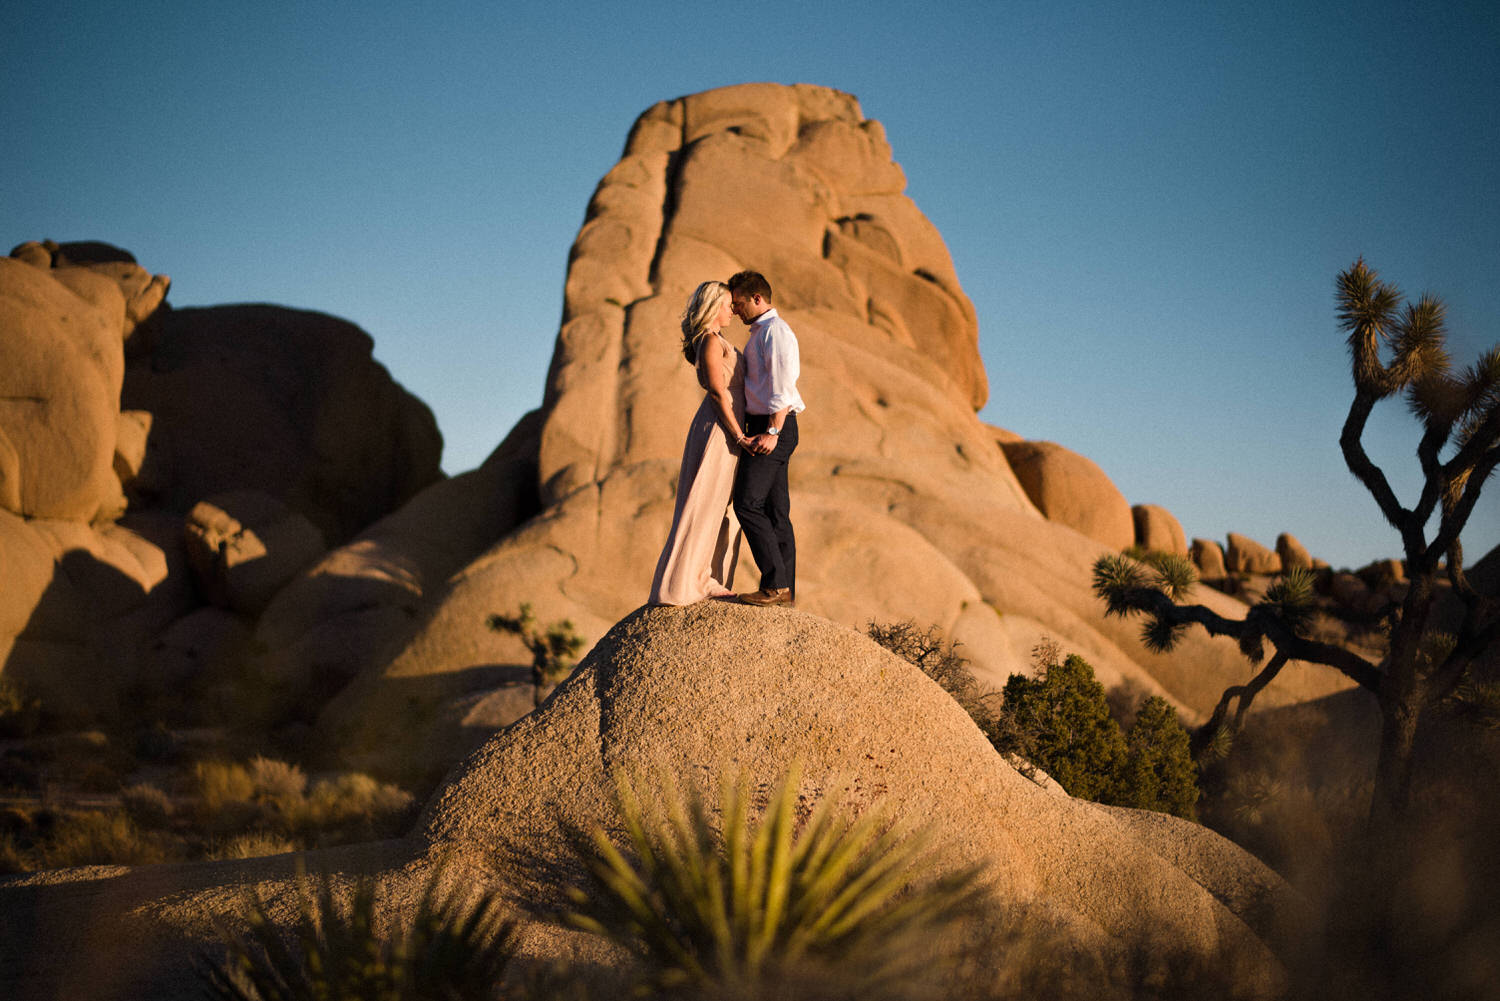 Couple standing on rock in desert at sunset